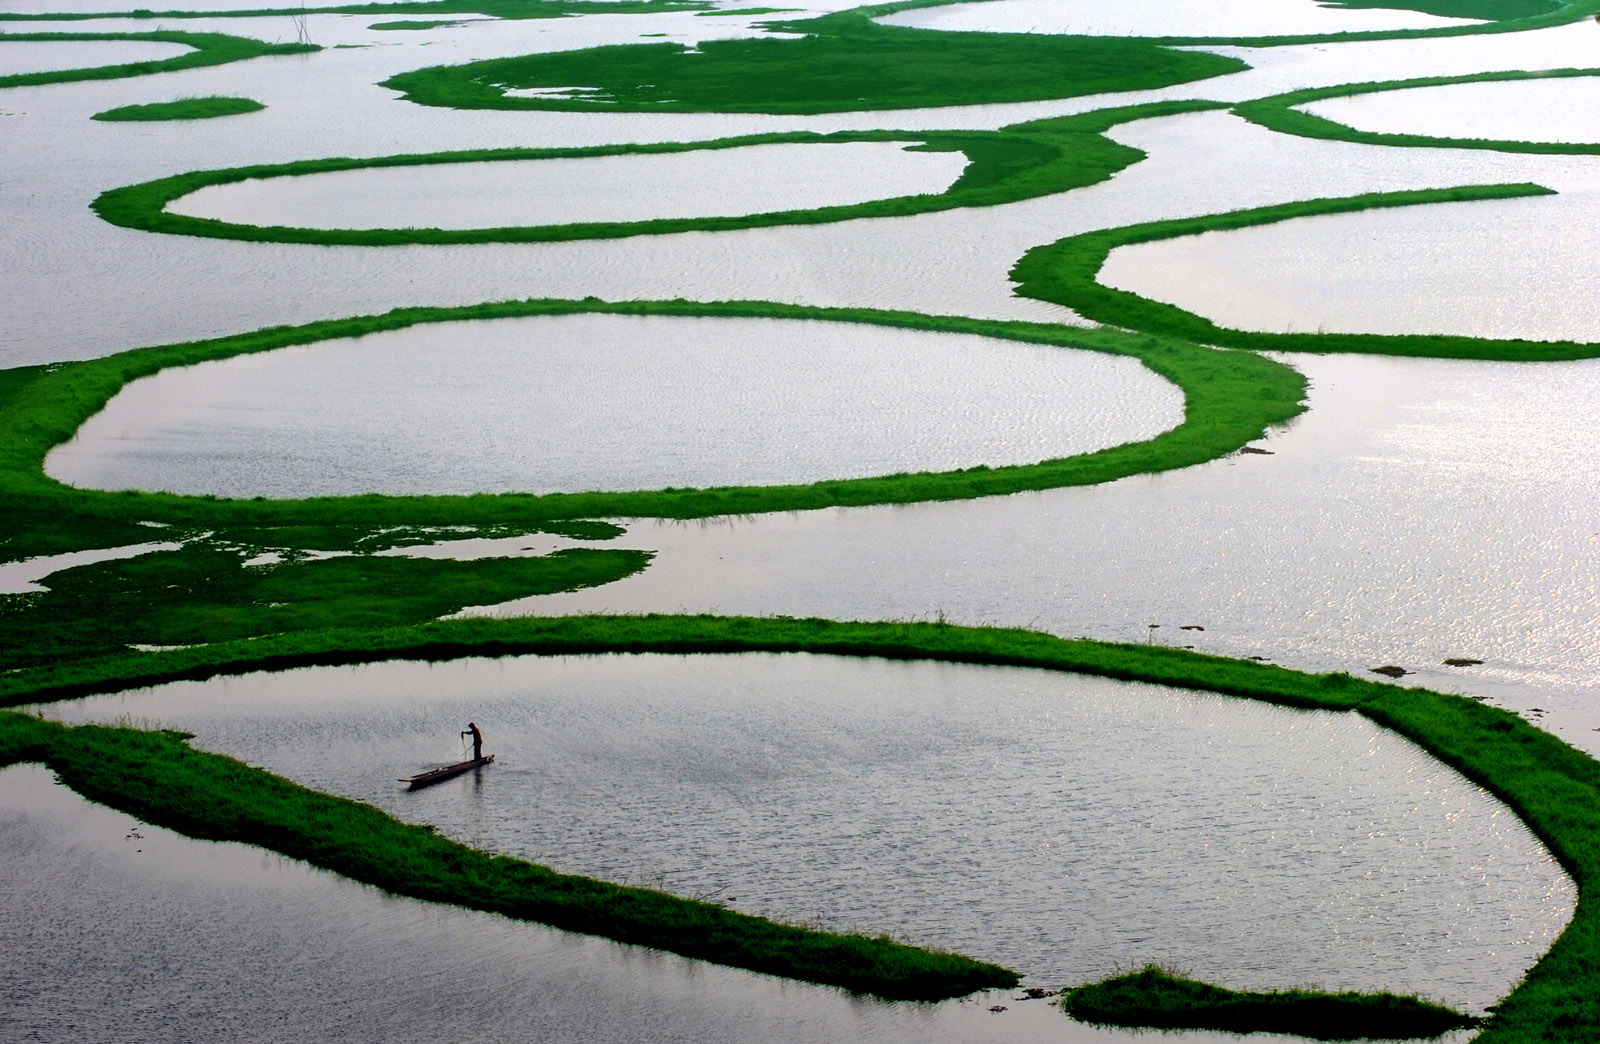 Floating Islands in Loktak Lake